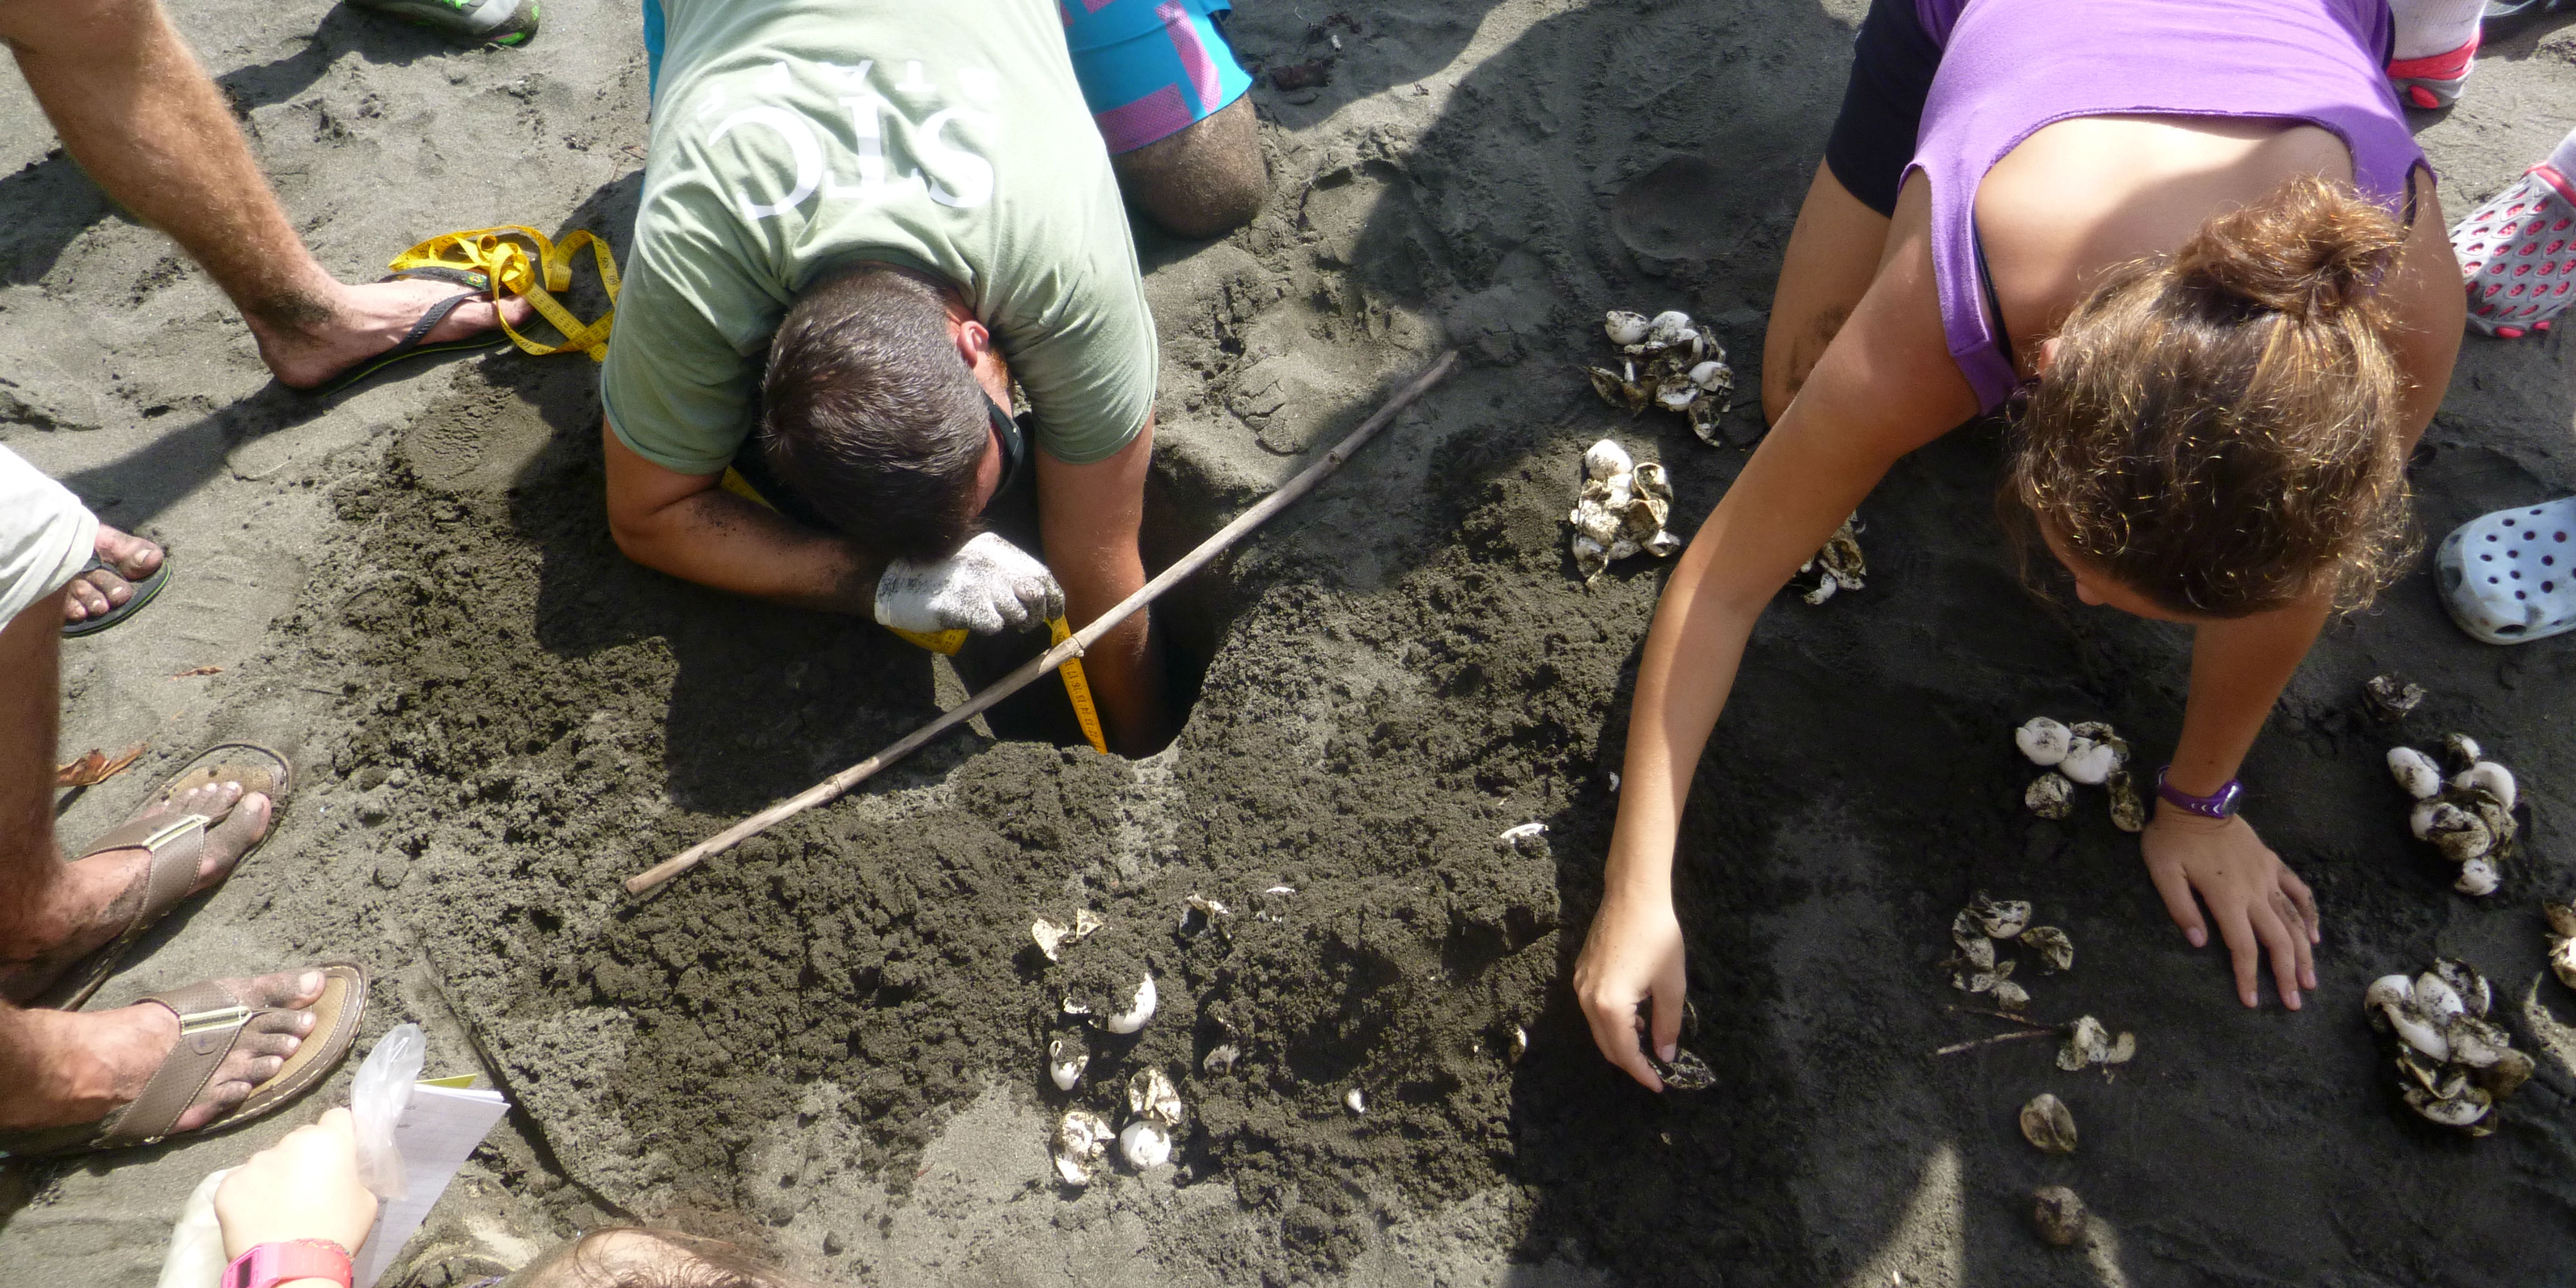 GVI particpants take part in sea turtle conservation by excavating sea turtle nests to determine hatching success rate.